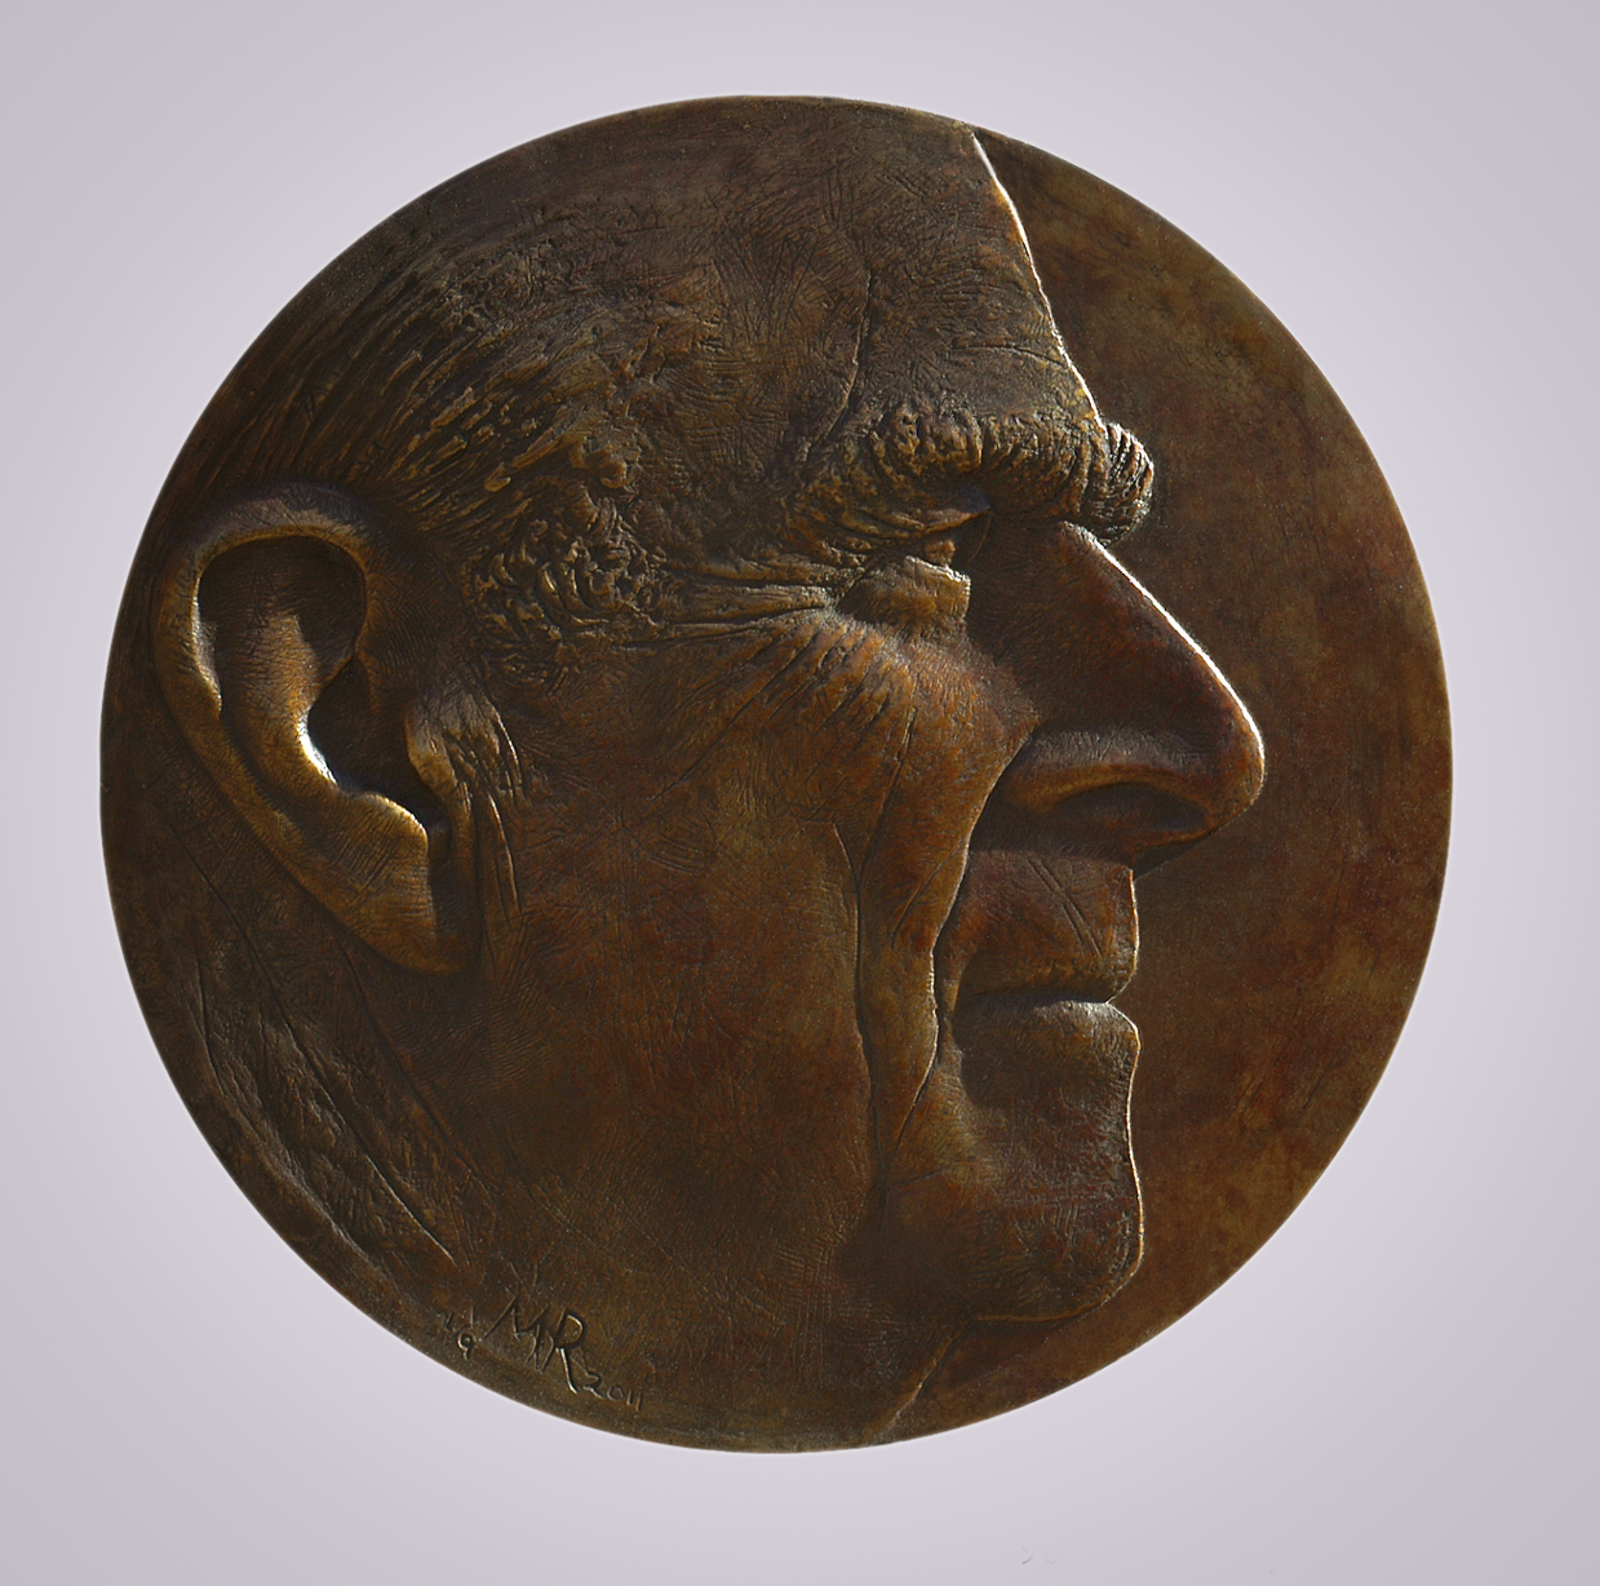 Prince Philip 2012 Royal Mint